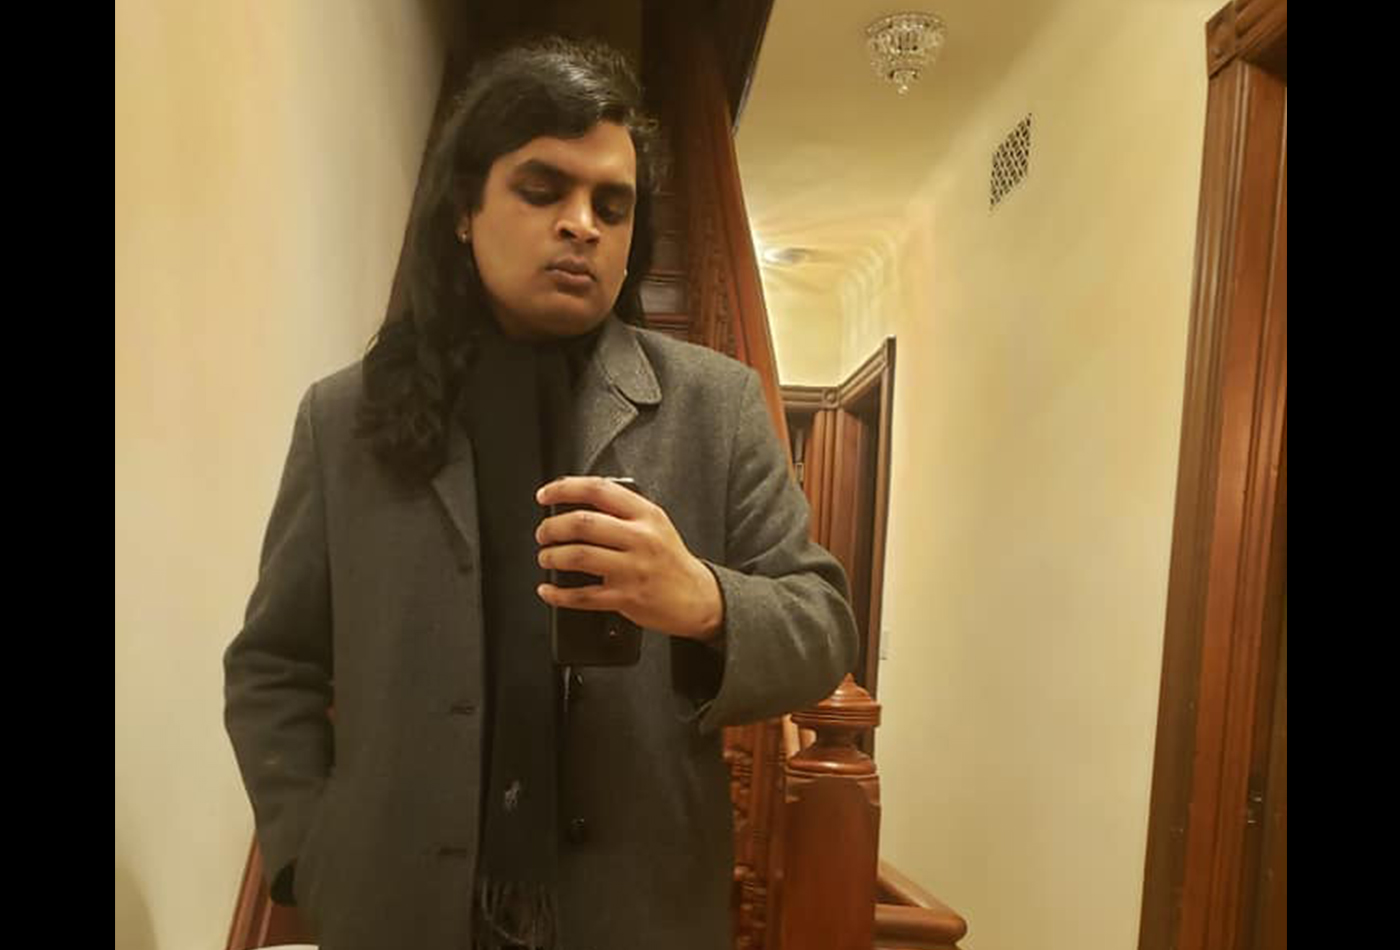 A graduate student with long black hair stands in a hallway.